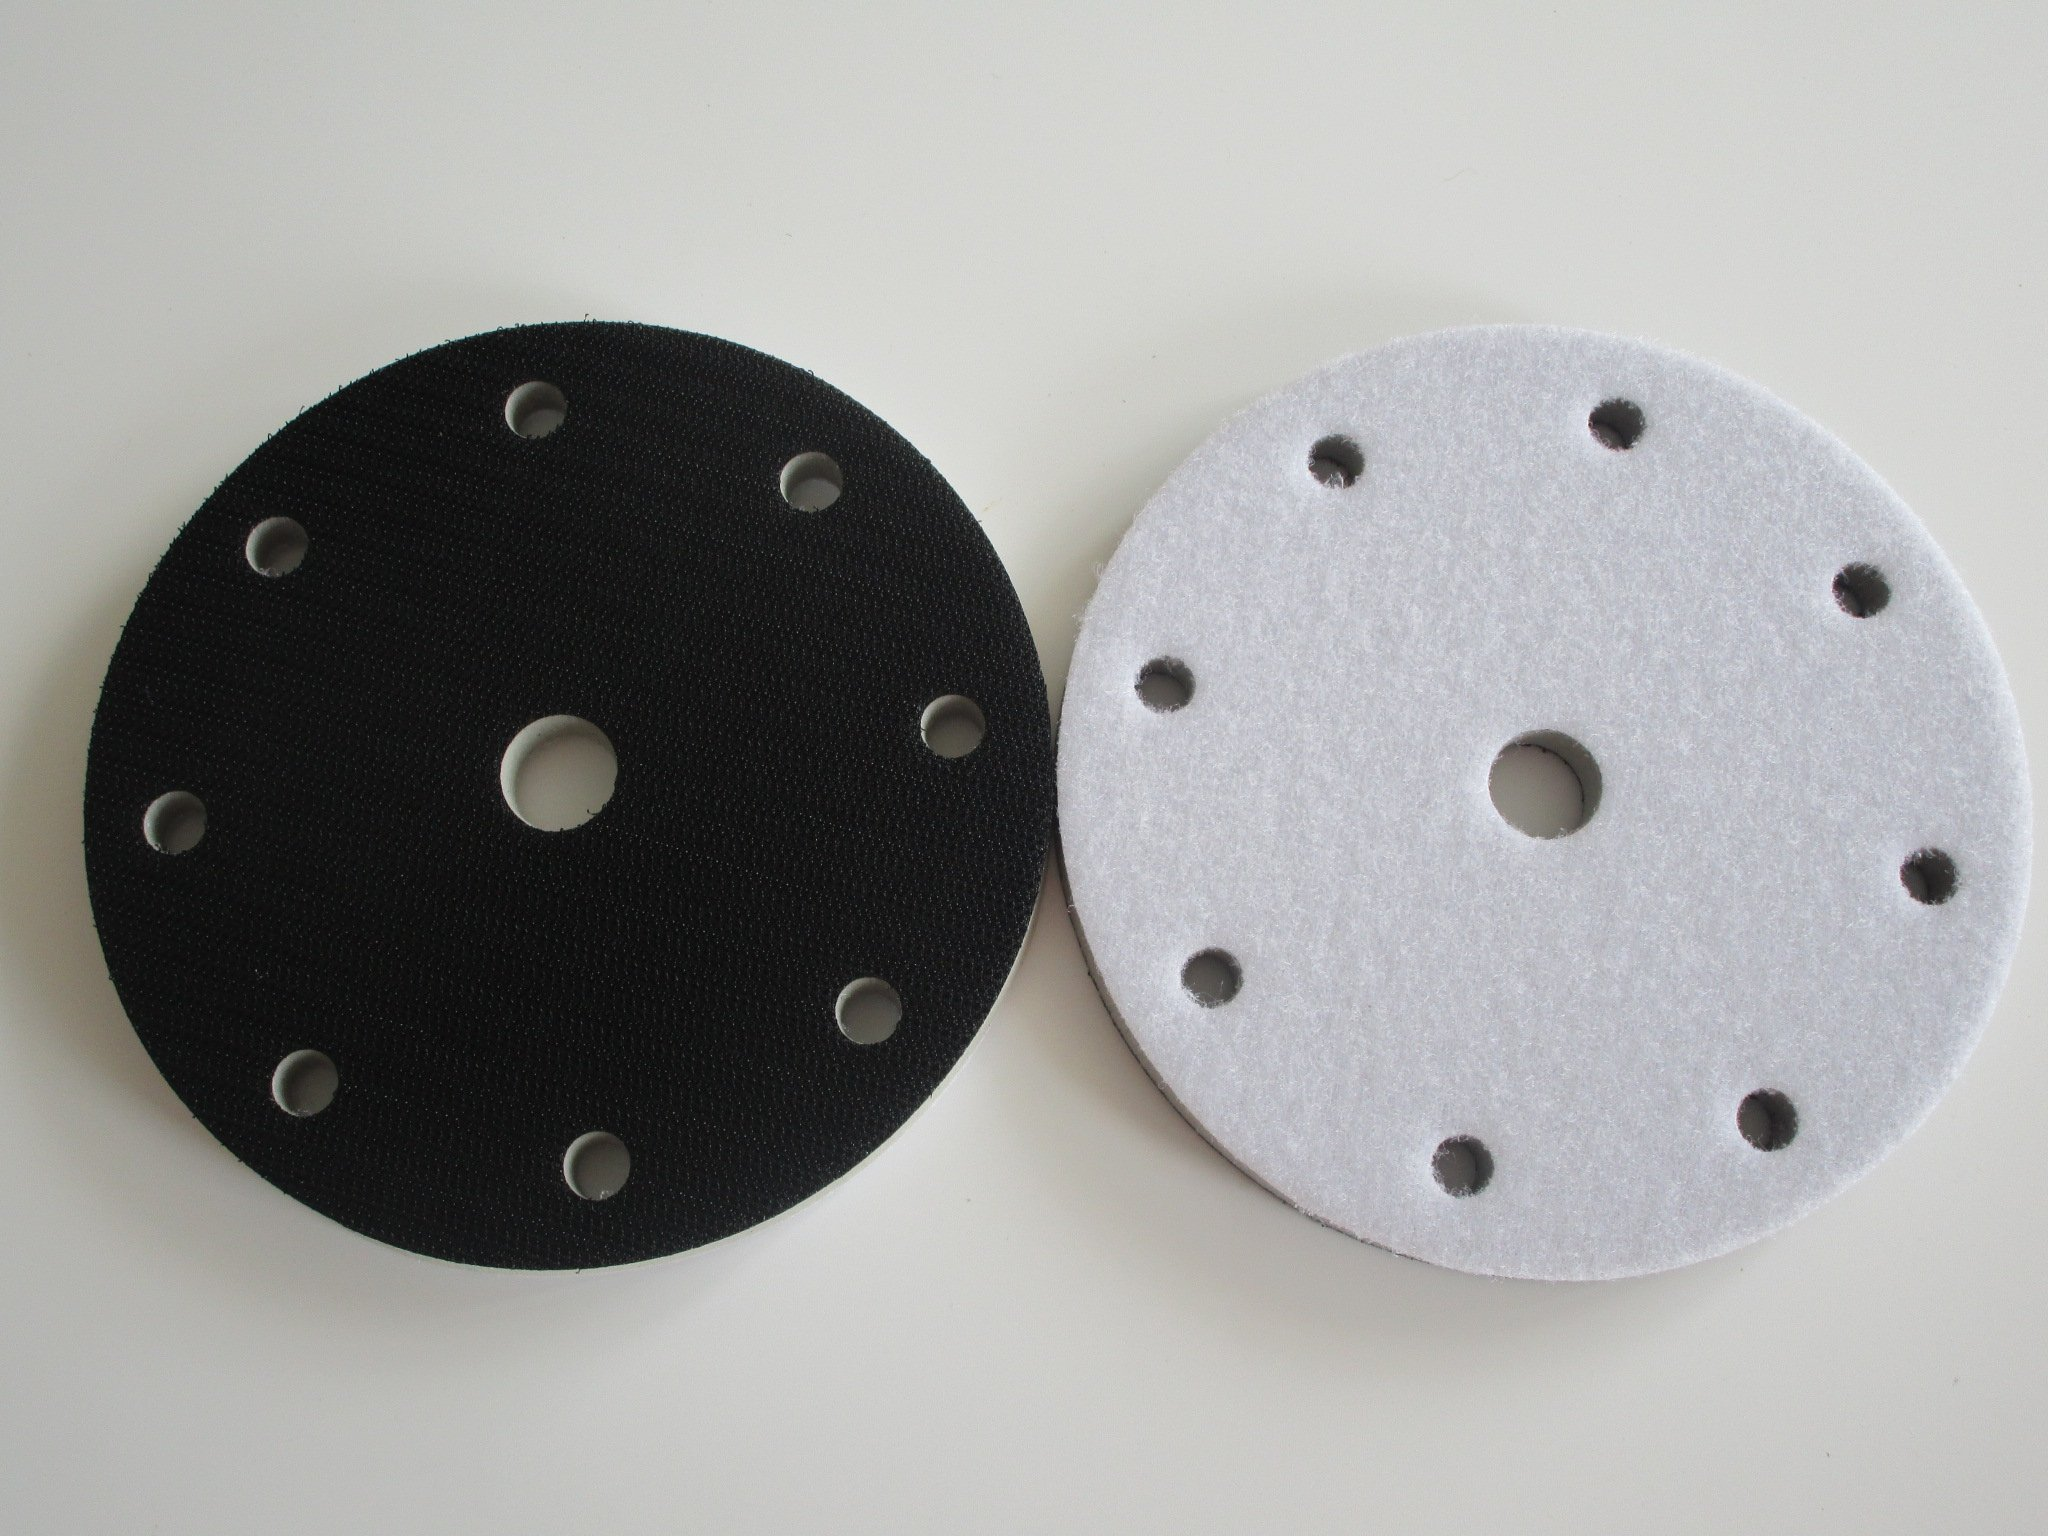 High Density Interface Pad 6'' 9 Holes 150mm Damping & Protection Sanding Pad (Pack of 5)